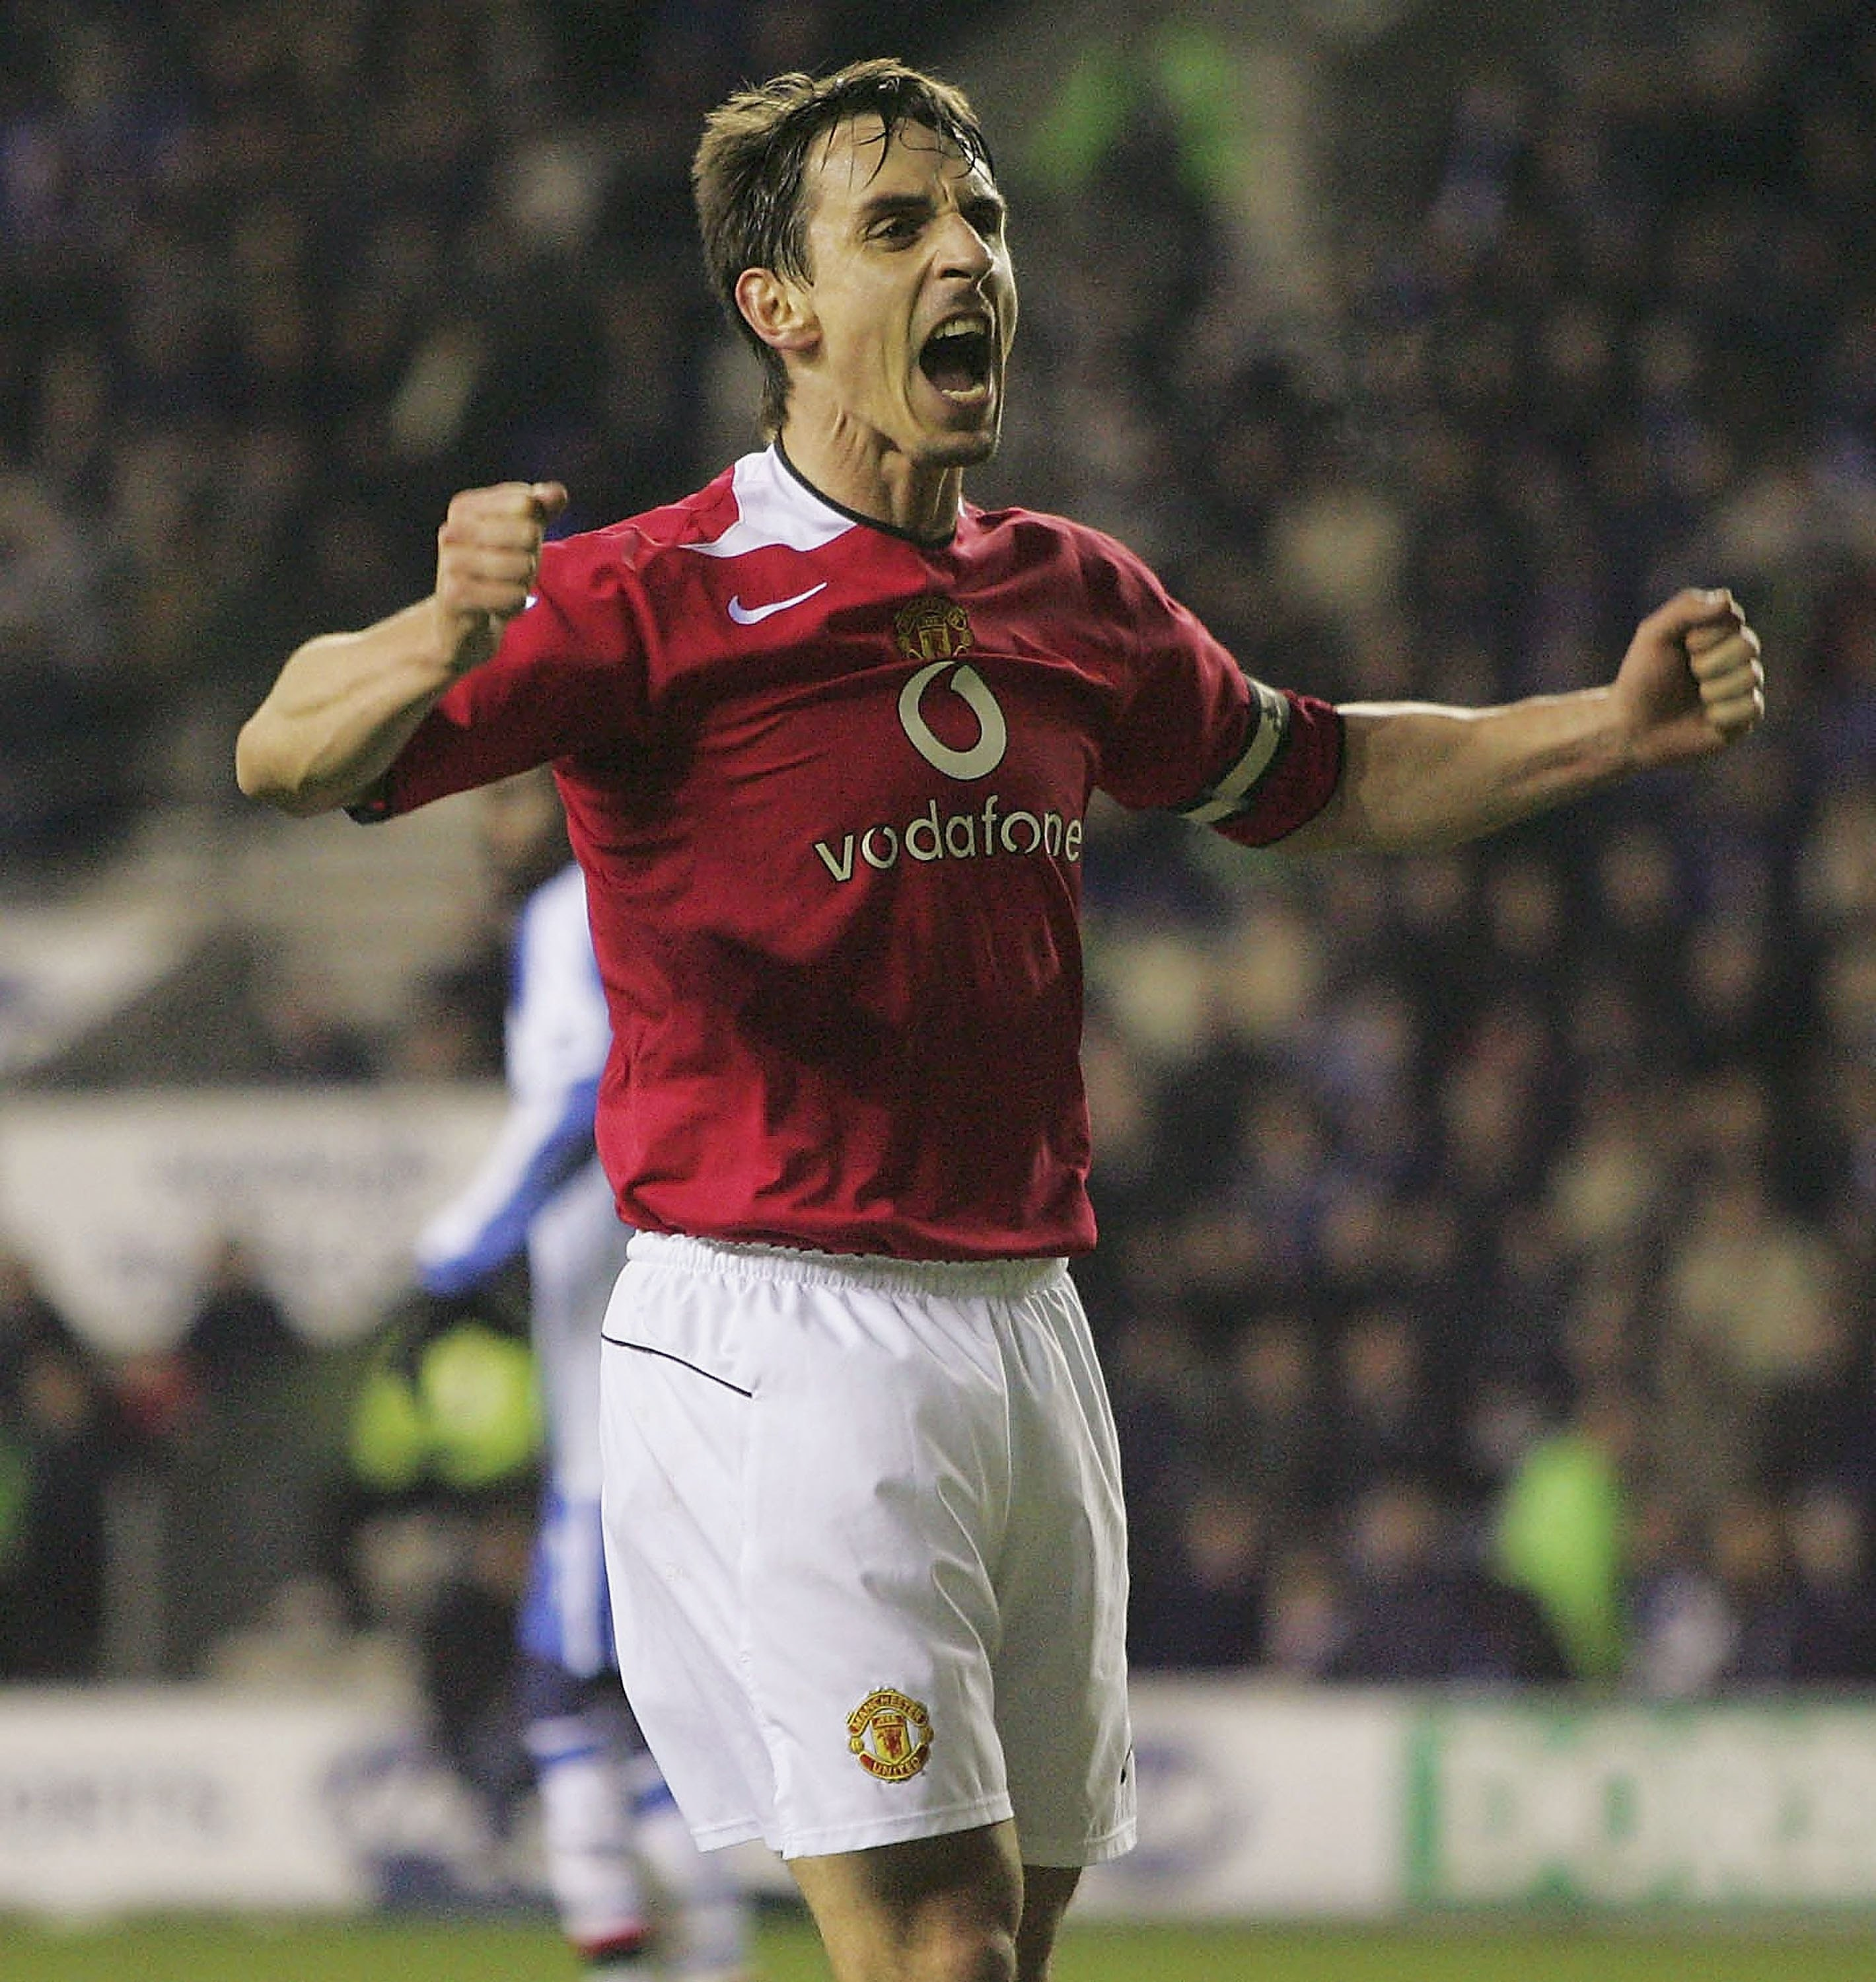 Gary Neville left voicemails on random Liverpool fan's phone after 2007 Champions League defeat